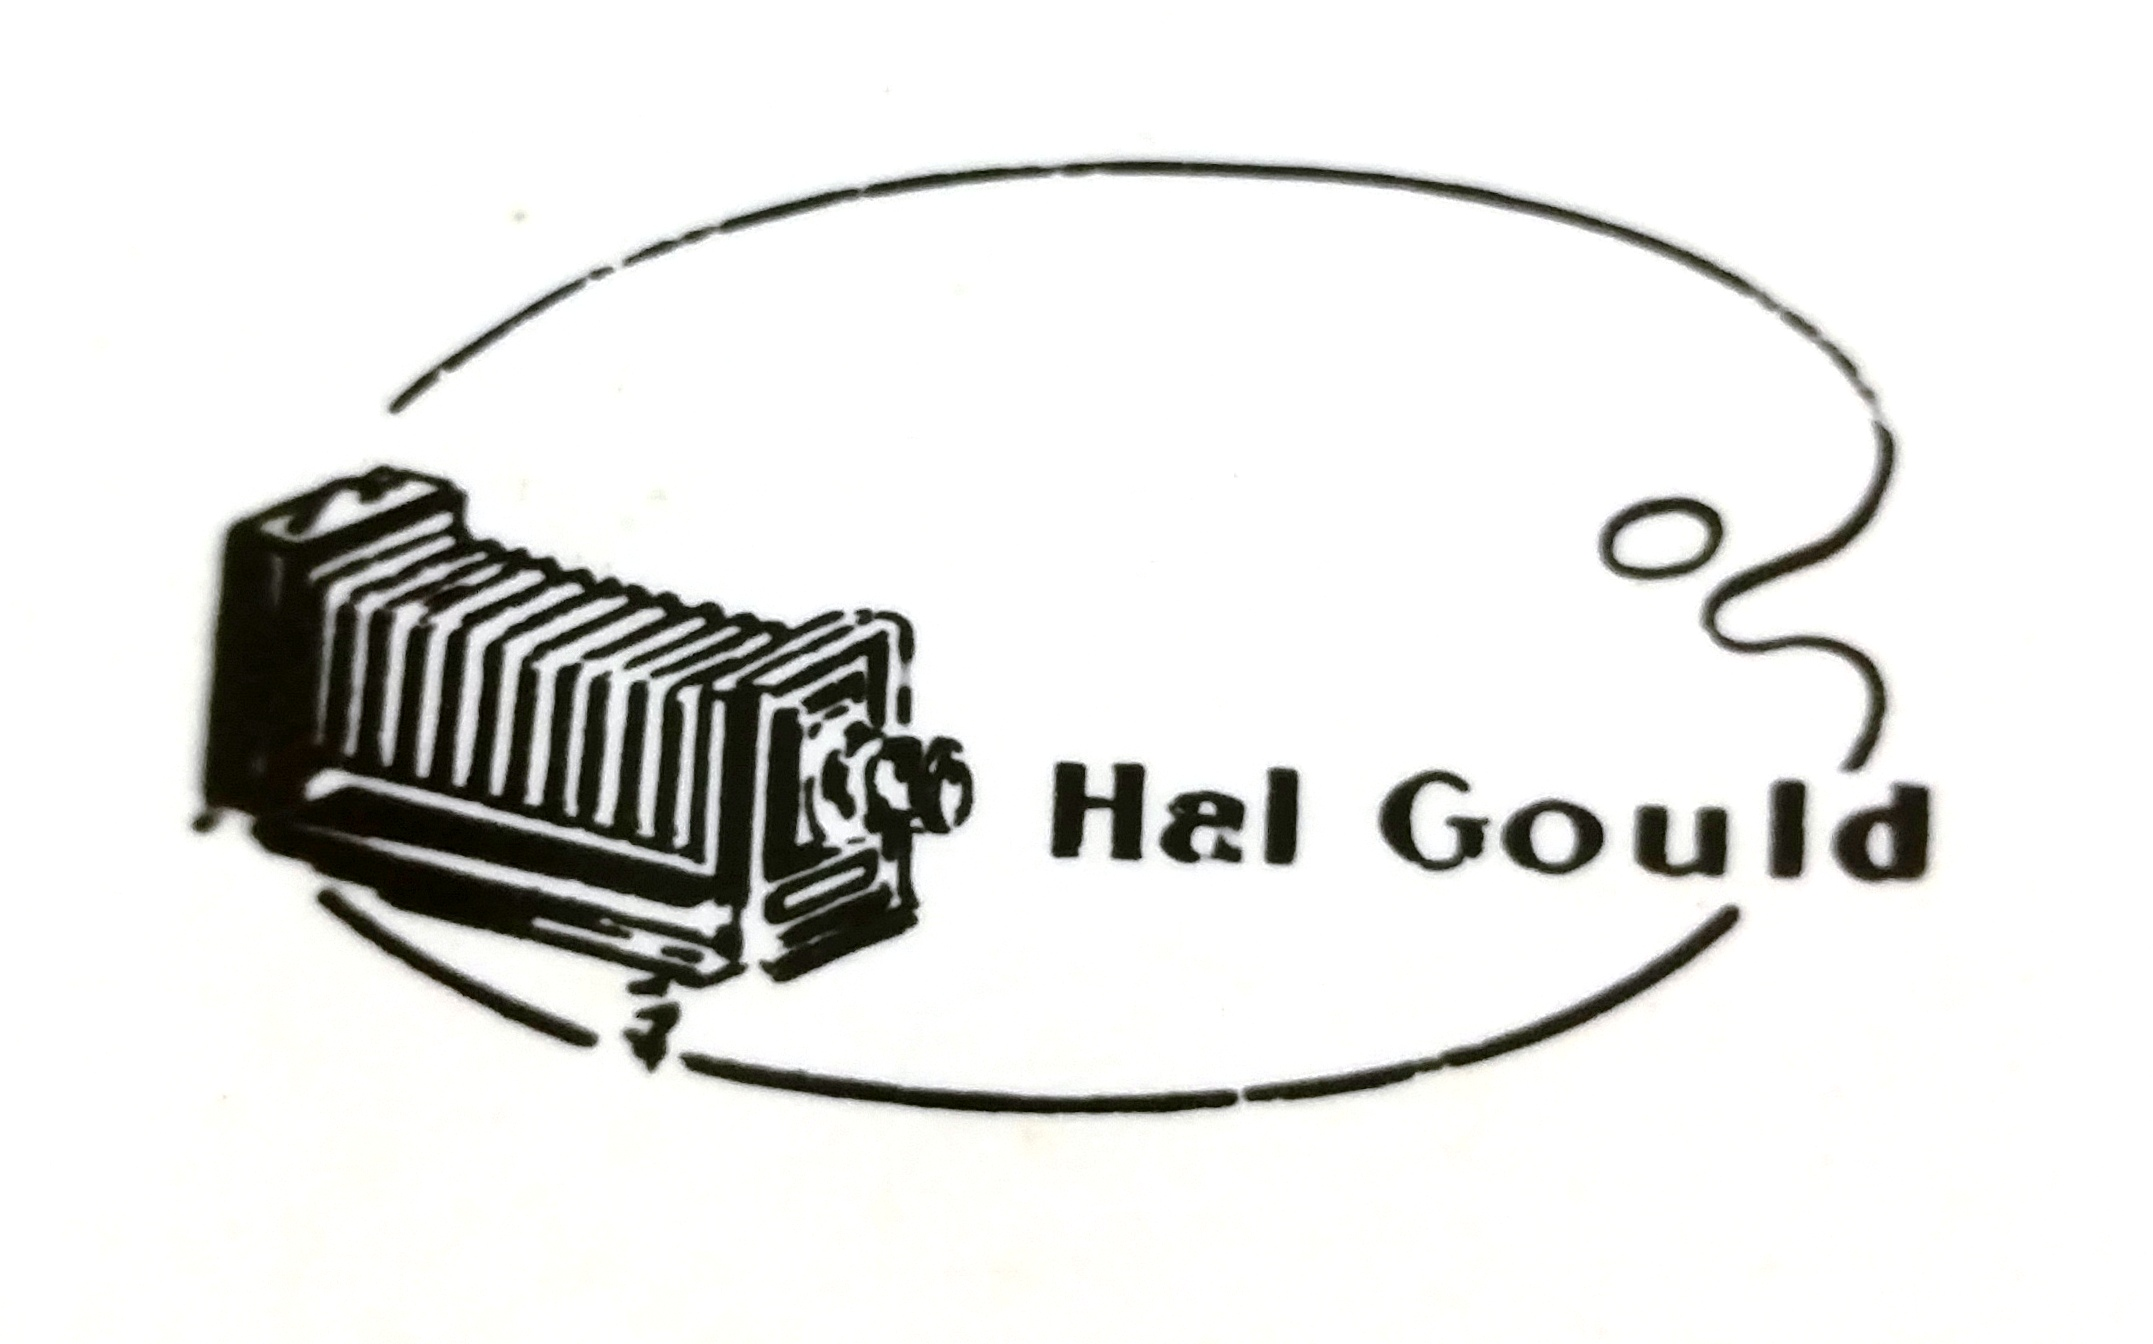 Remembering Hal Gould Famed Owner Of Camera Obscura Gallery Diagram Logo